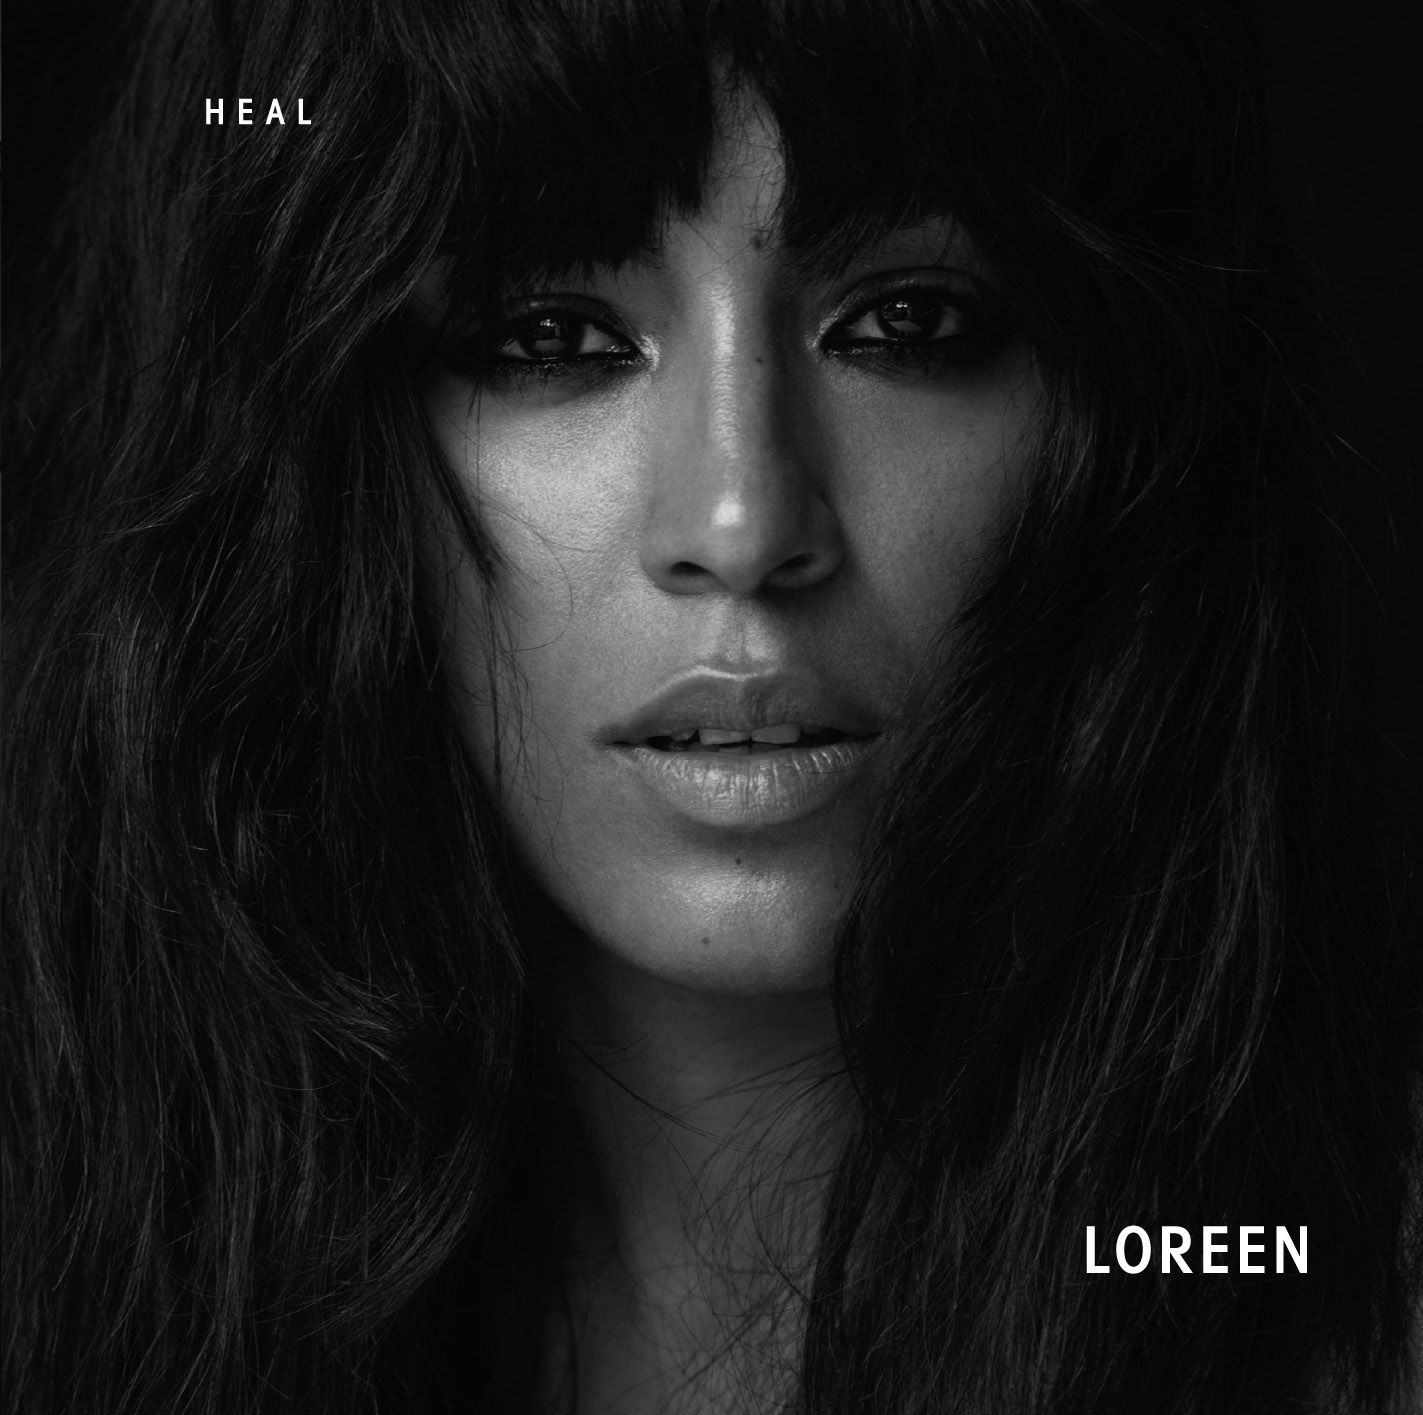 Loreen - Heal album cover